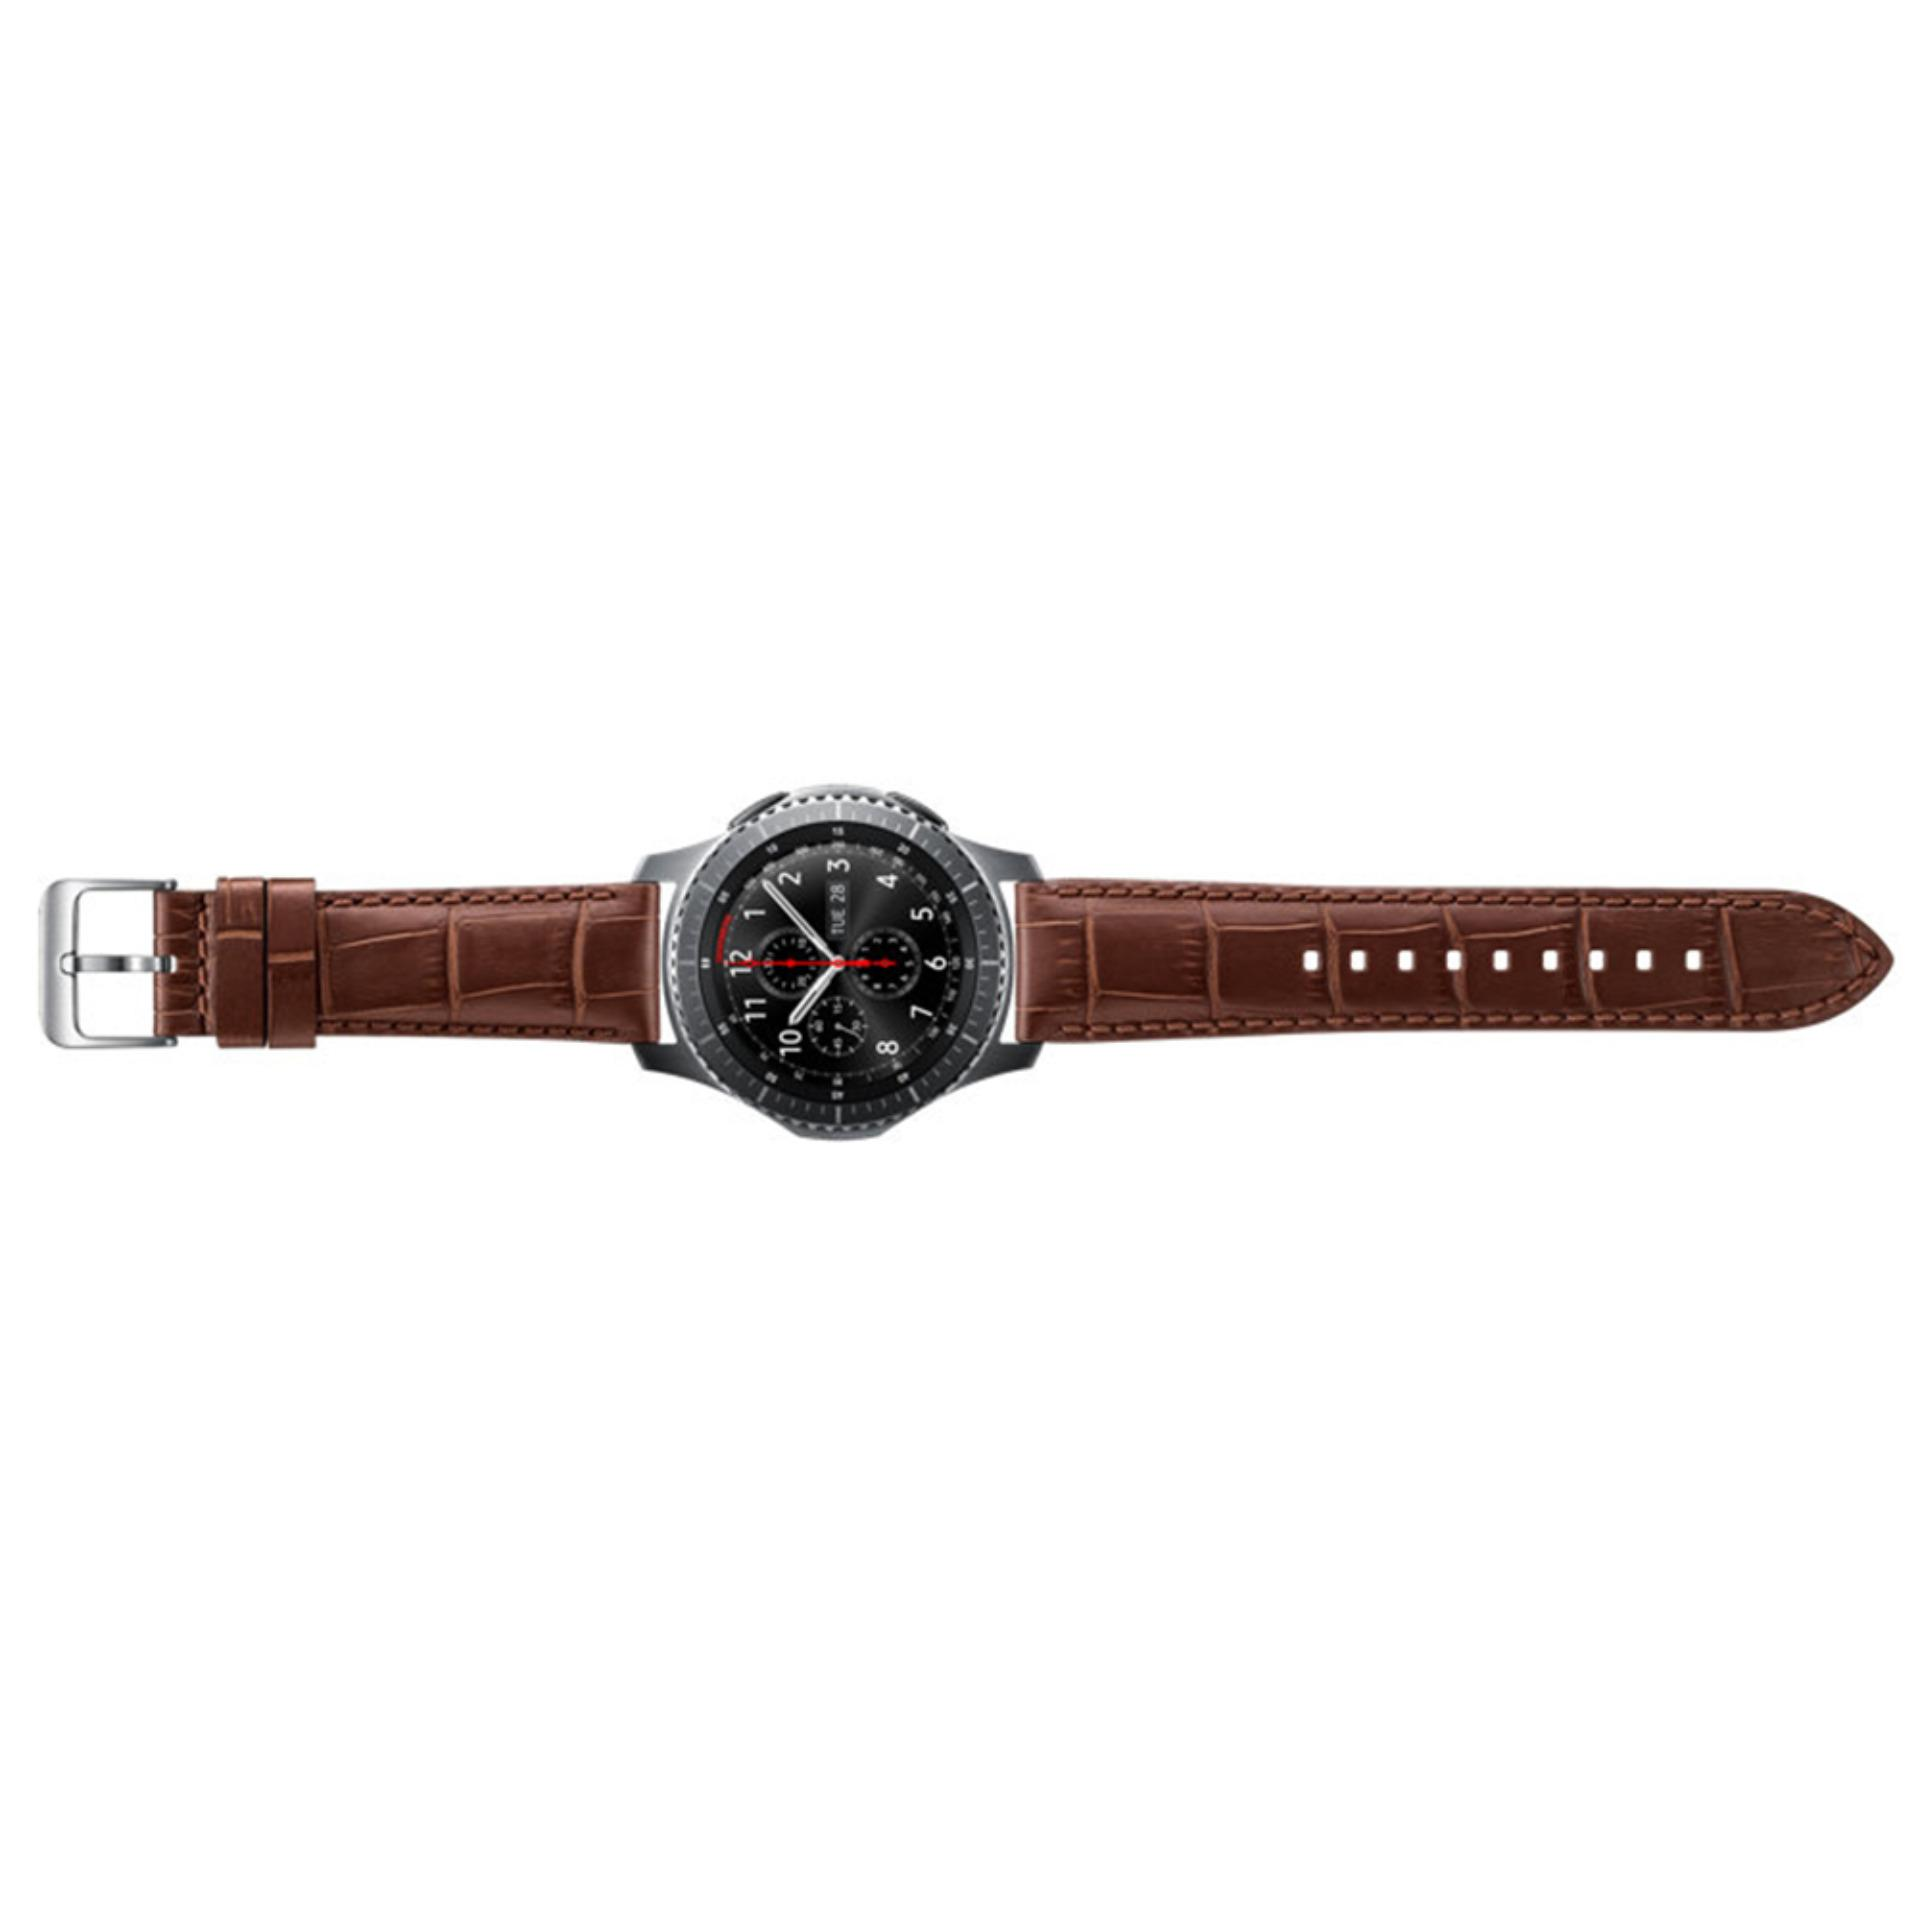 ... Seeme Tempered Glass Screen. Source · Samsung Alligator Strap for Gear S3 - Brown .